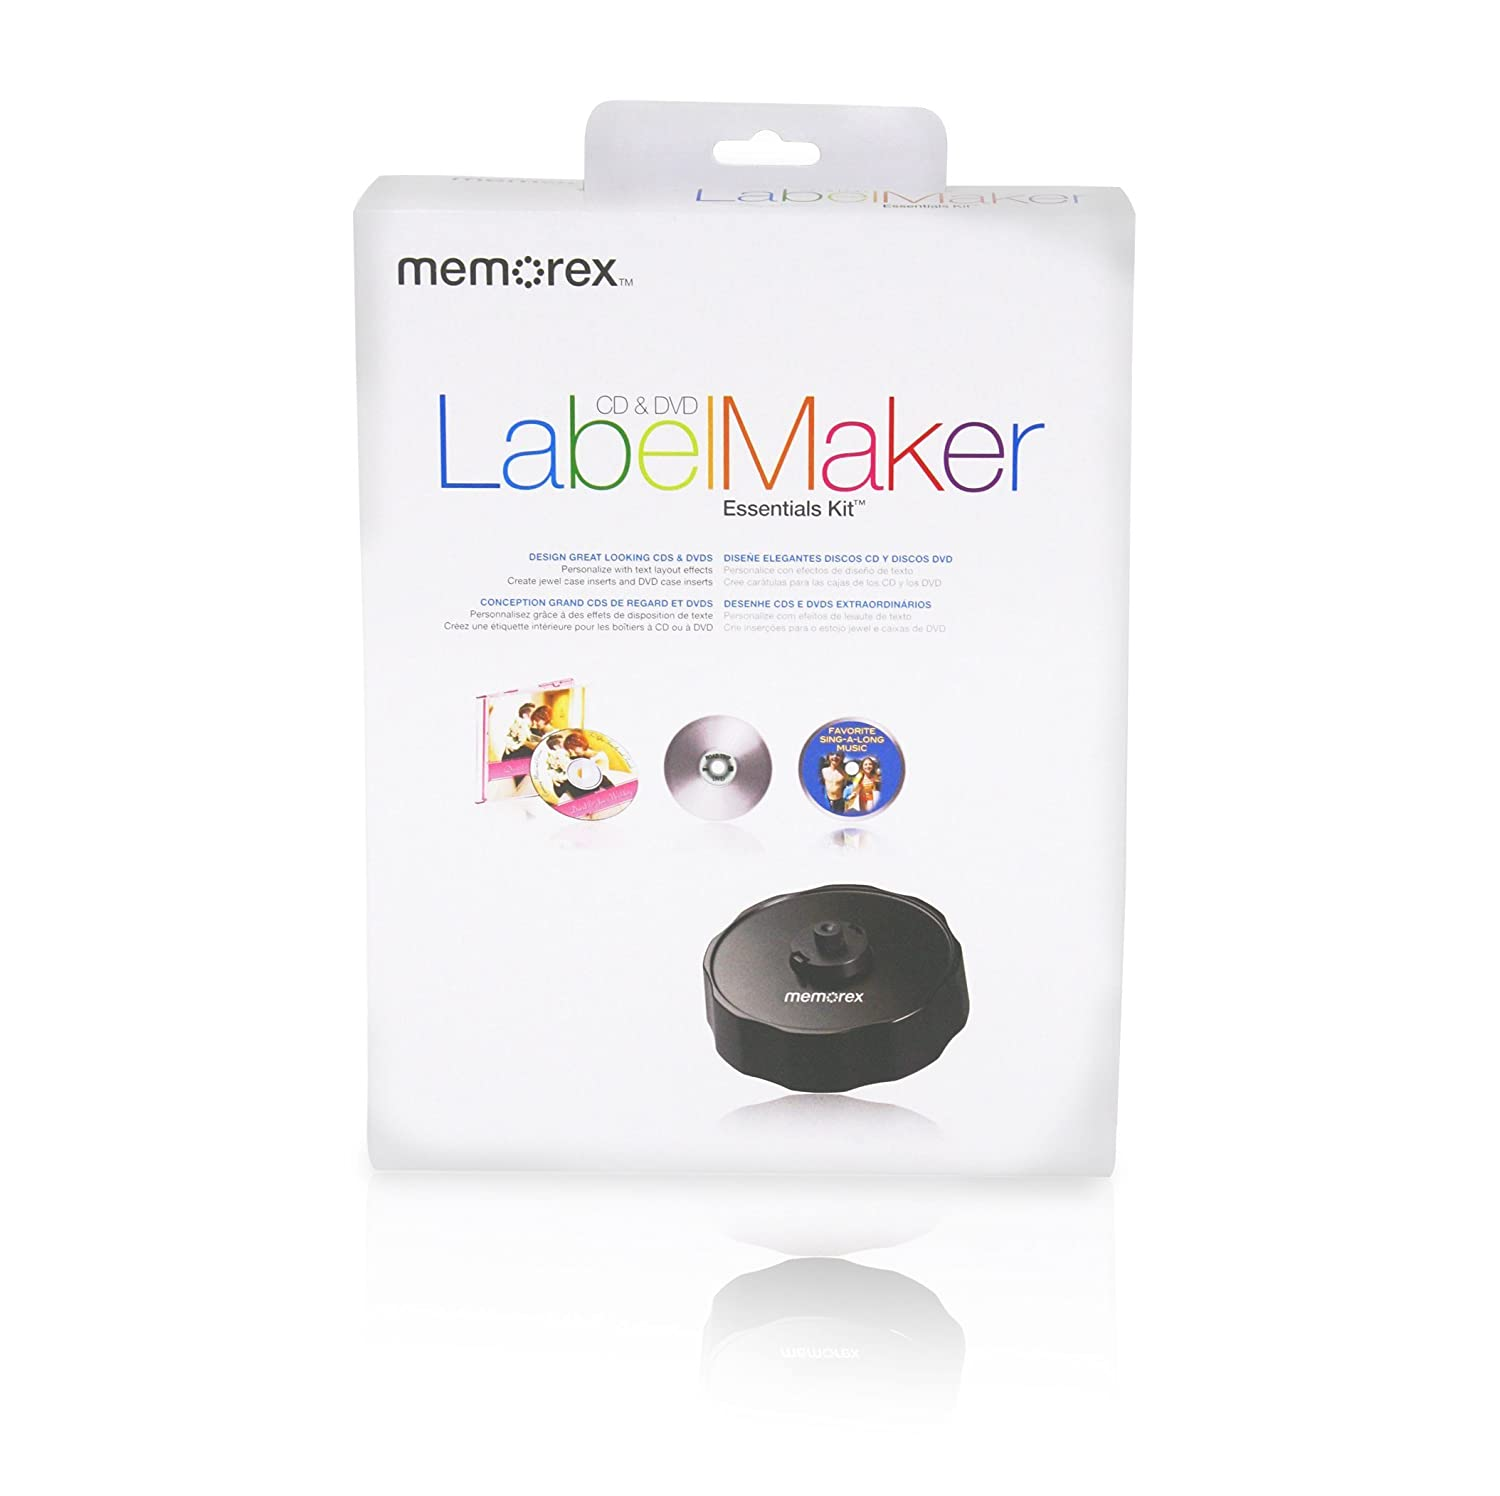 Memorex Label Maker Essentials Kit Discontinued By Manufacturer Home Audio Theater